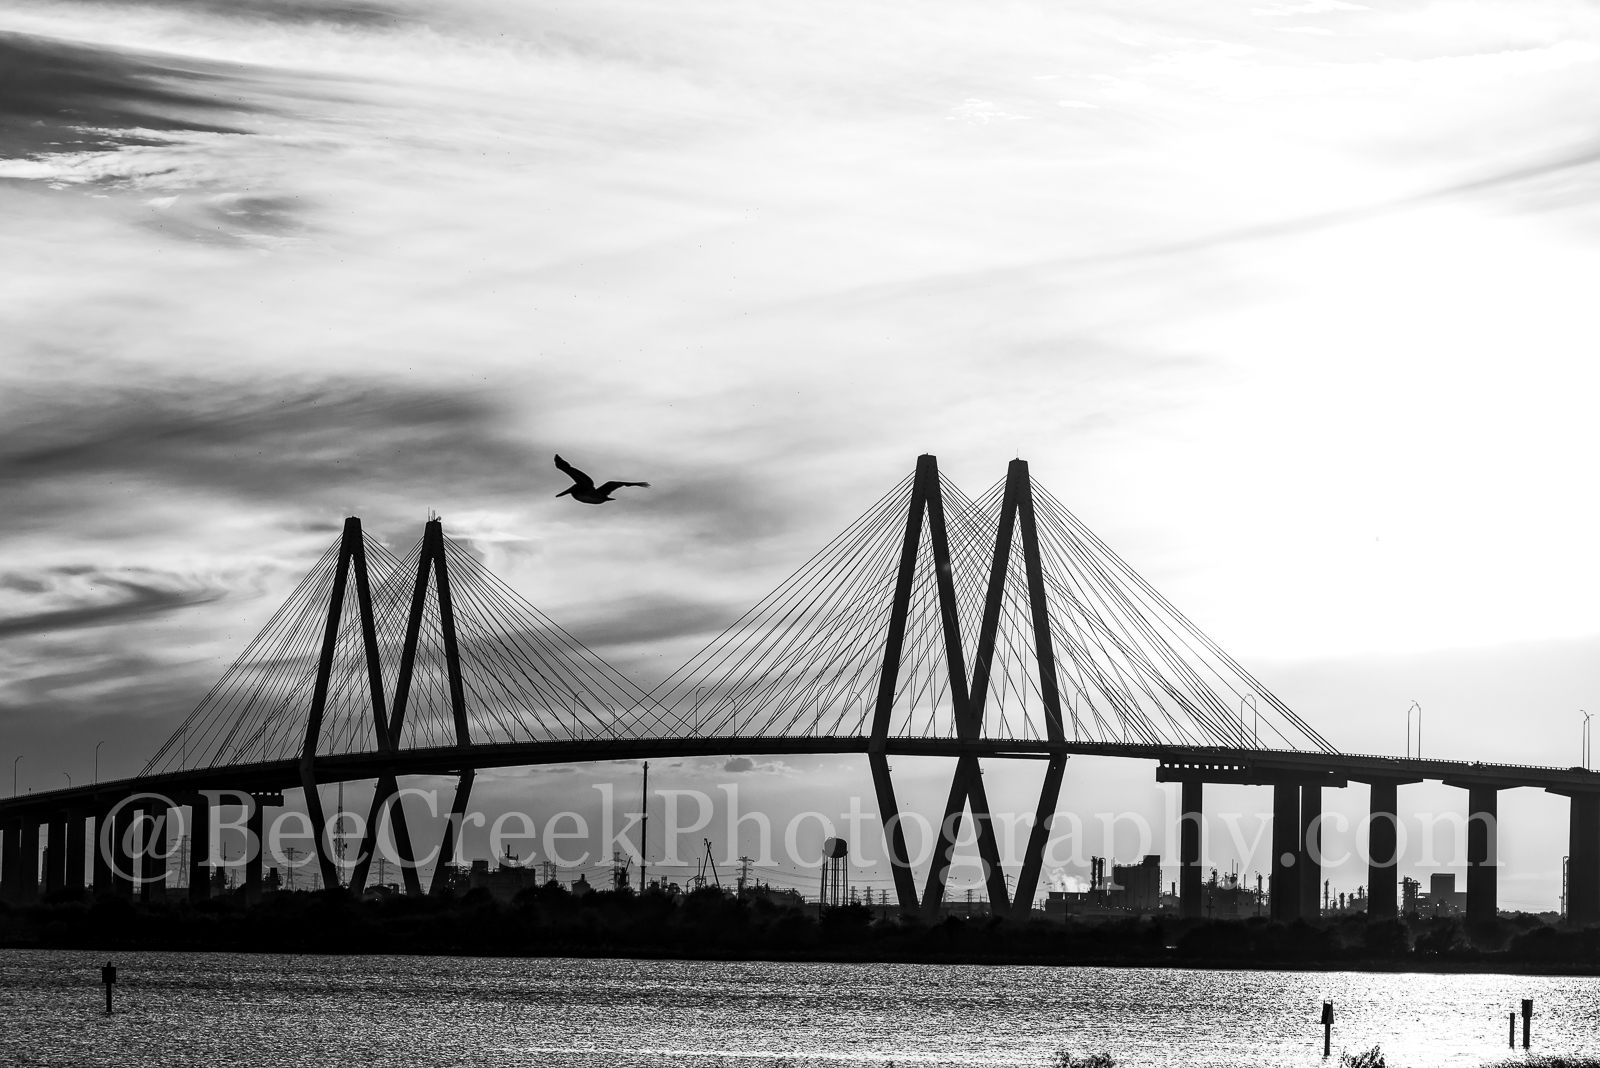 Baytown, Harris County, Houston, La Porte, black and white, bw, cable stay bridge, city, cityscape, cityscapes, landscape, landscapes, ship channel, sky, sunset, texas, photo